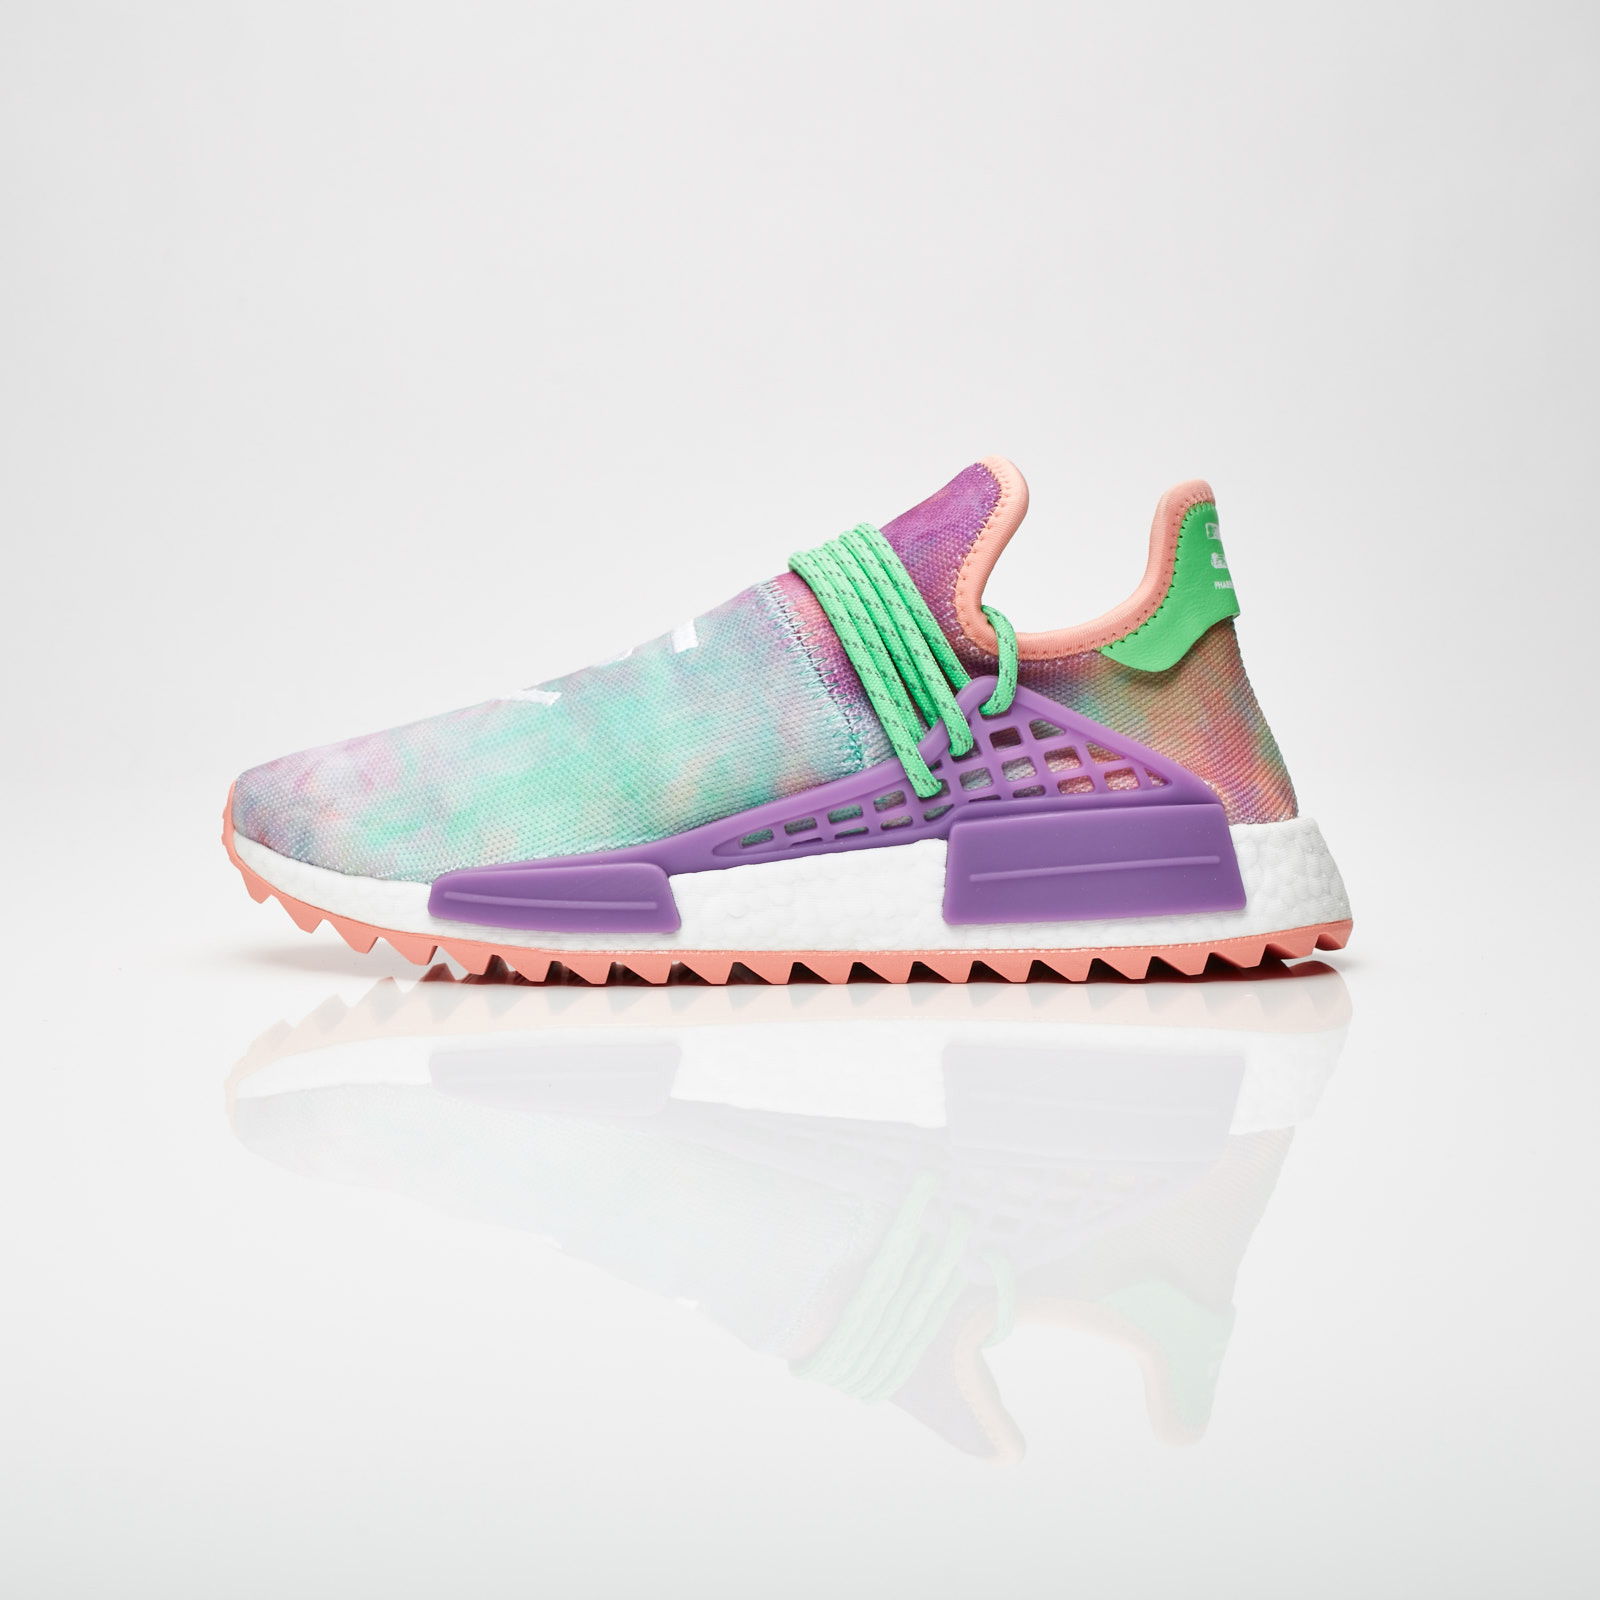 57df62f3f0f12 adidas Pharrell Williams HU Holi NMD MC - Ac7034 - Sneakersnstuff ...